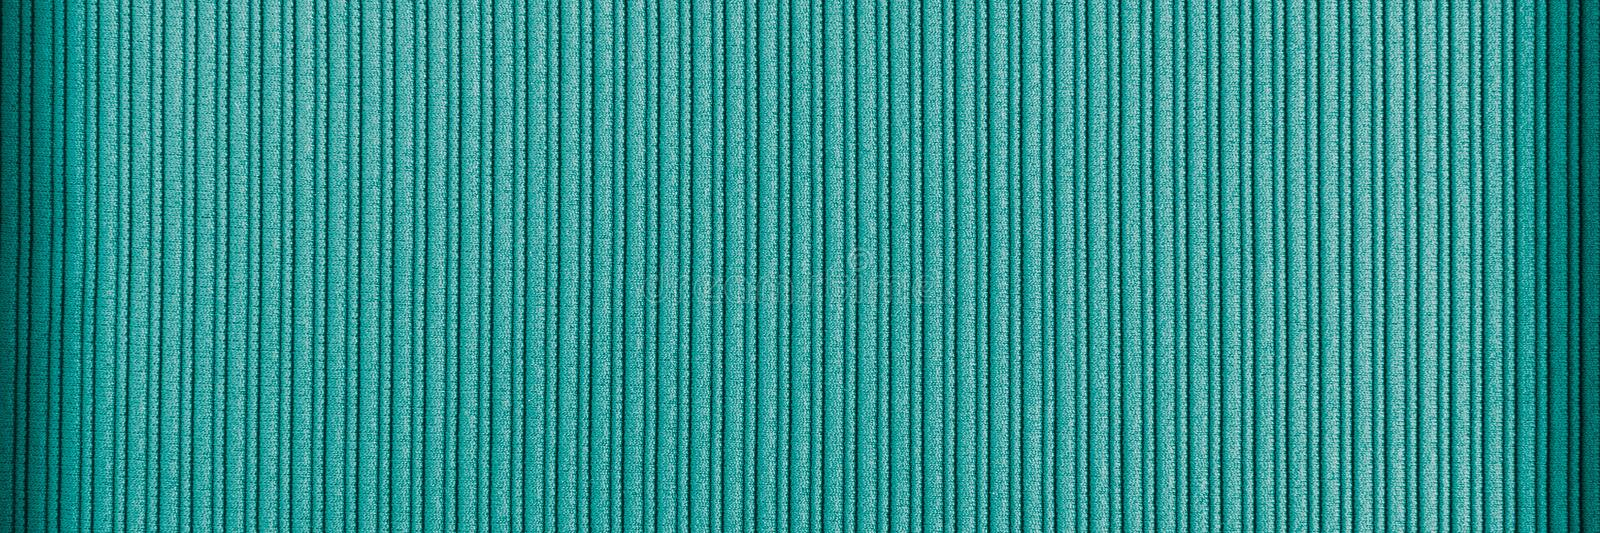 Turquoise décorative de fond, couleur bleue et cian, gradient rayé de dégradé de texture wallpaper Art Conception photo stock